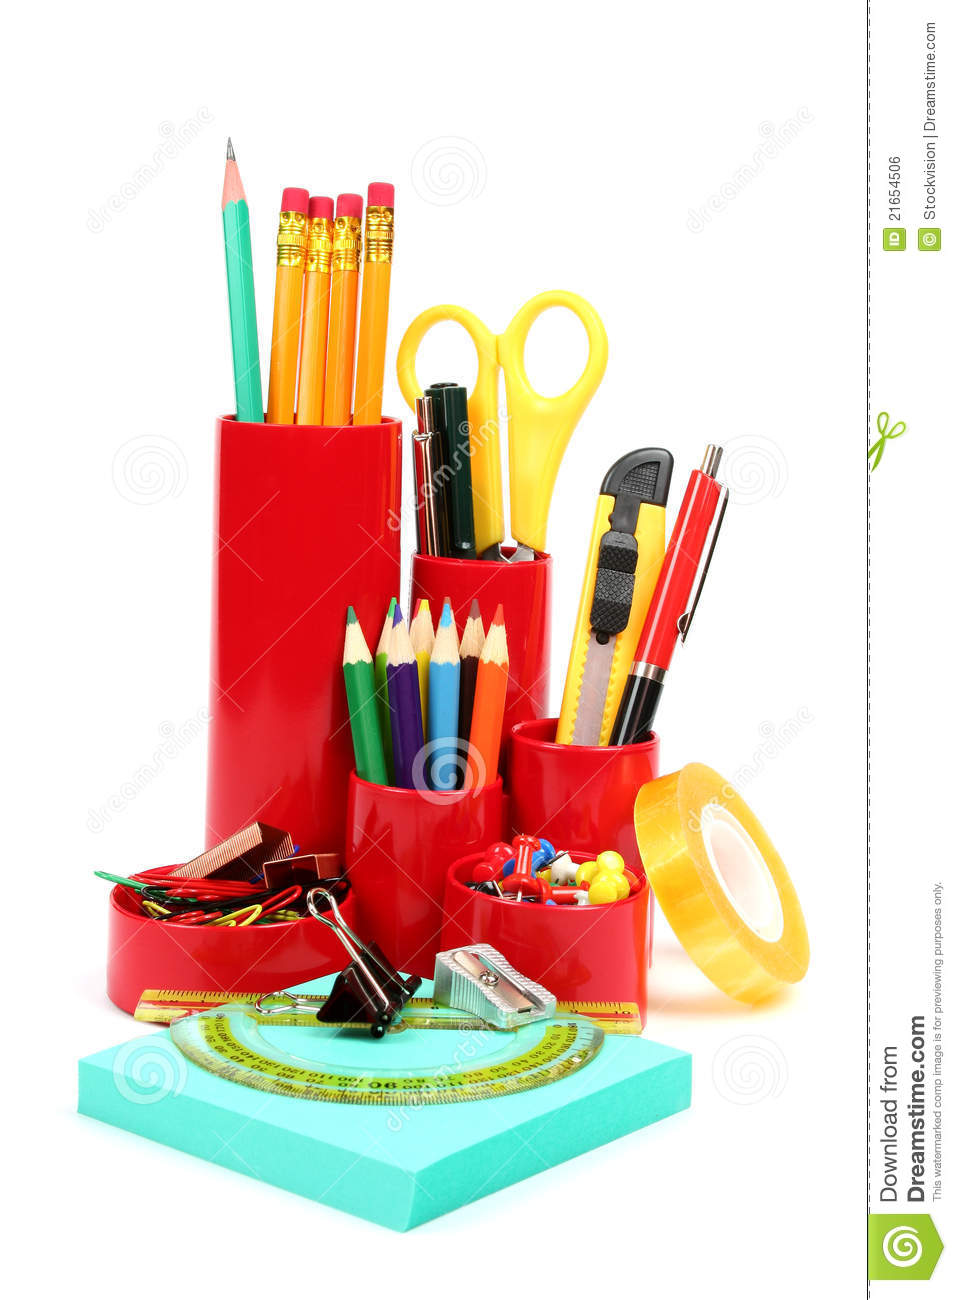 colorful office supplies royalty free stock image